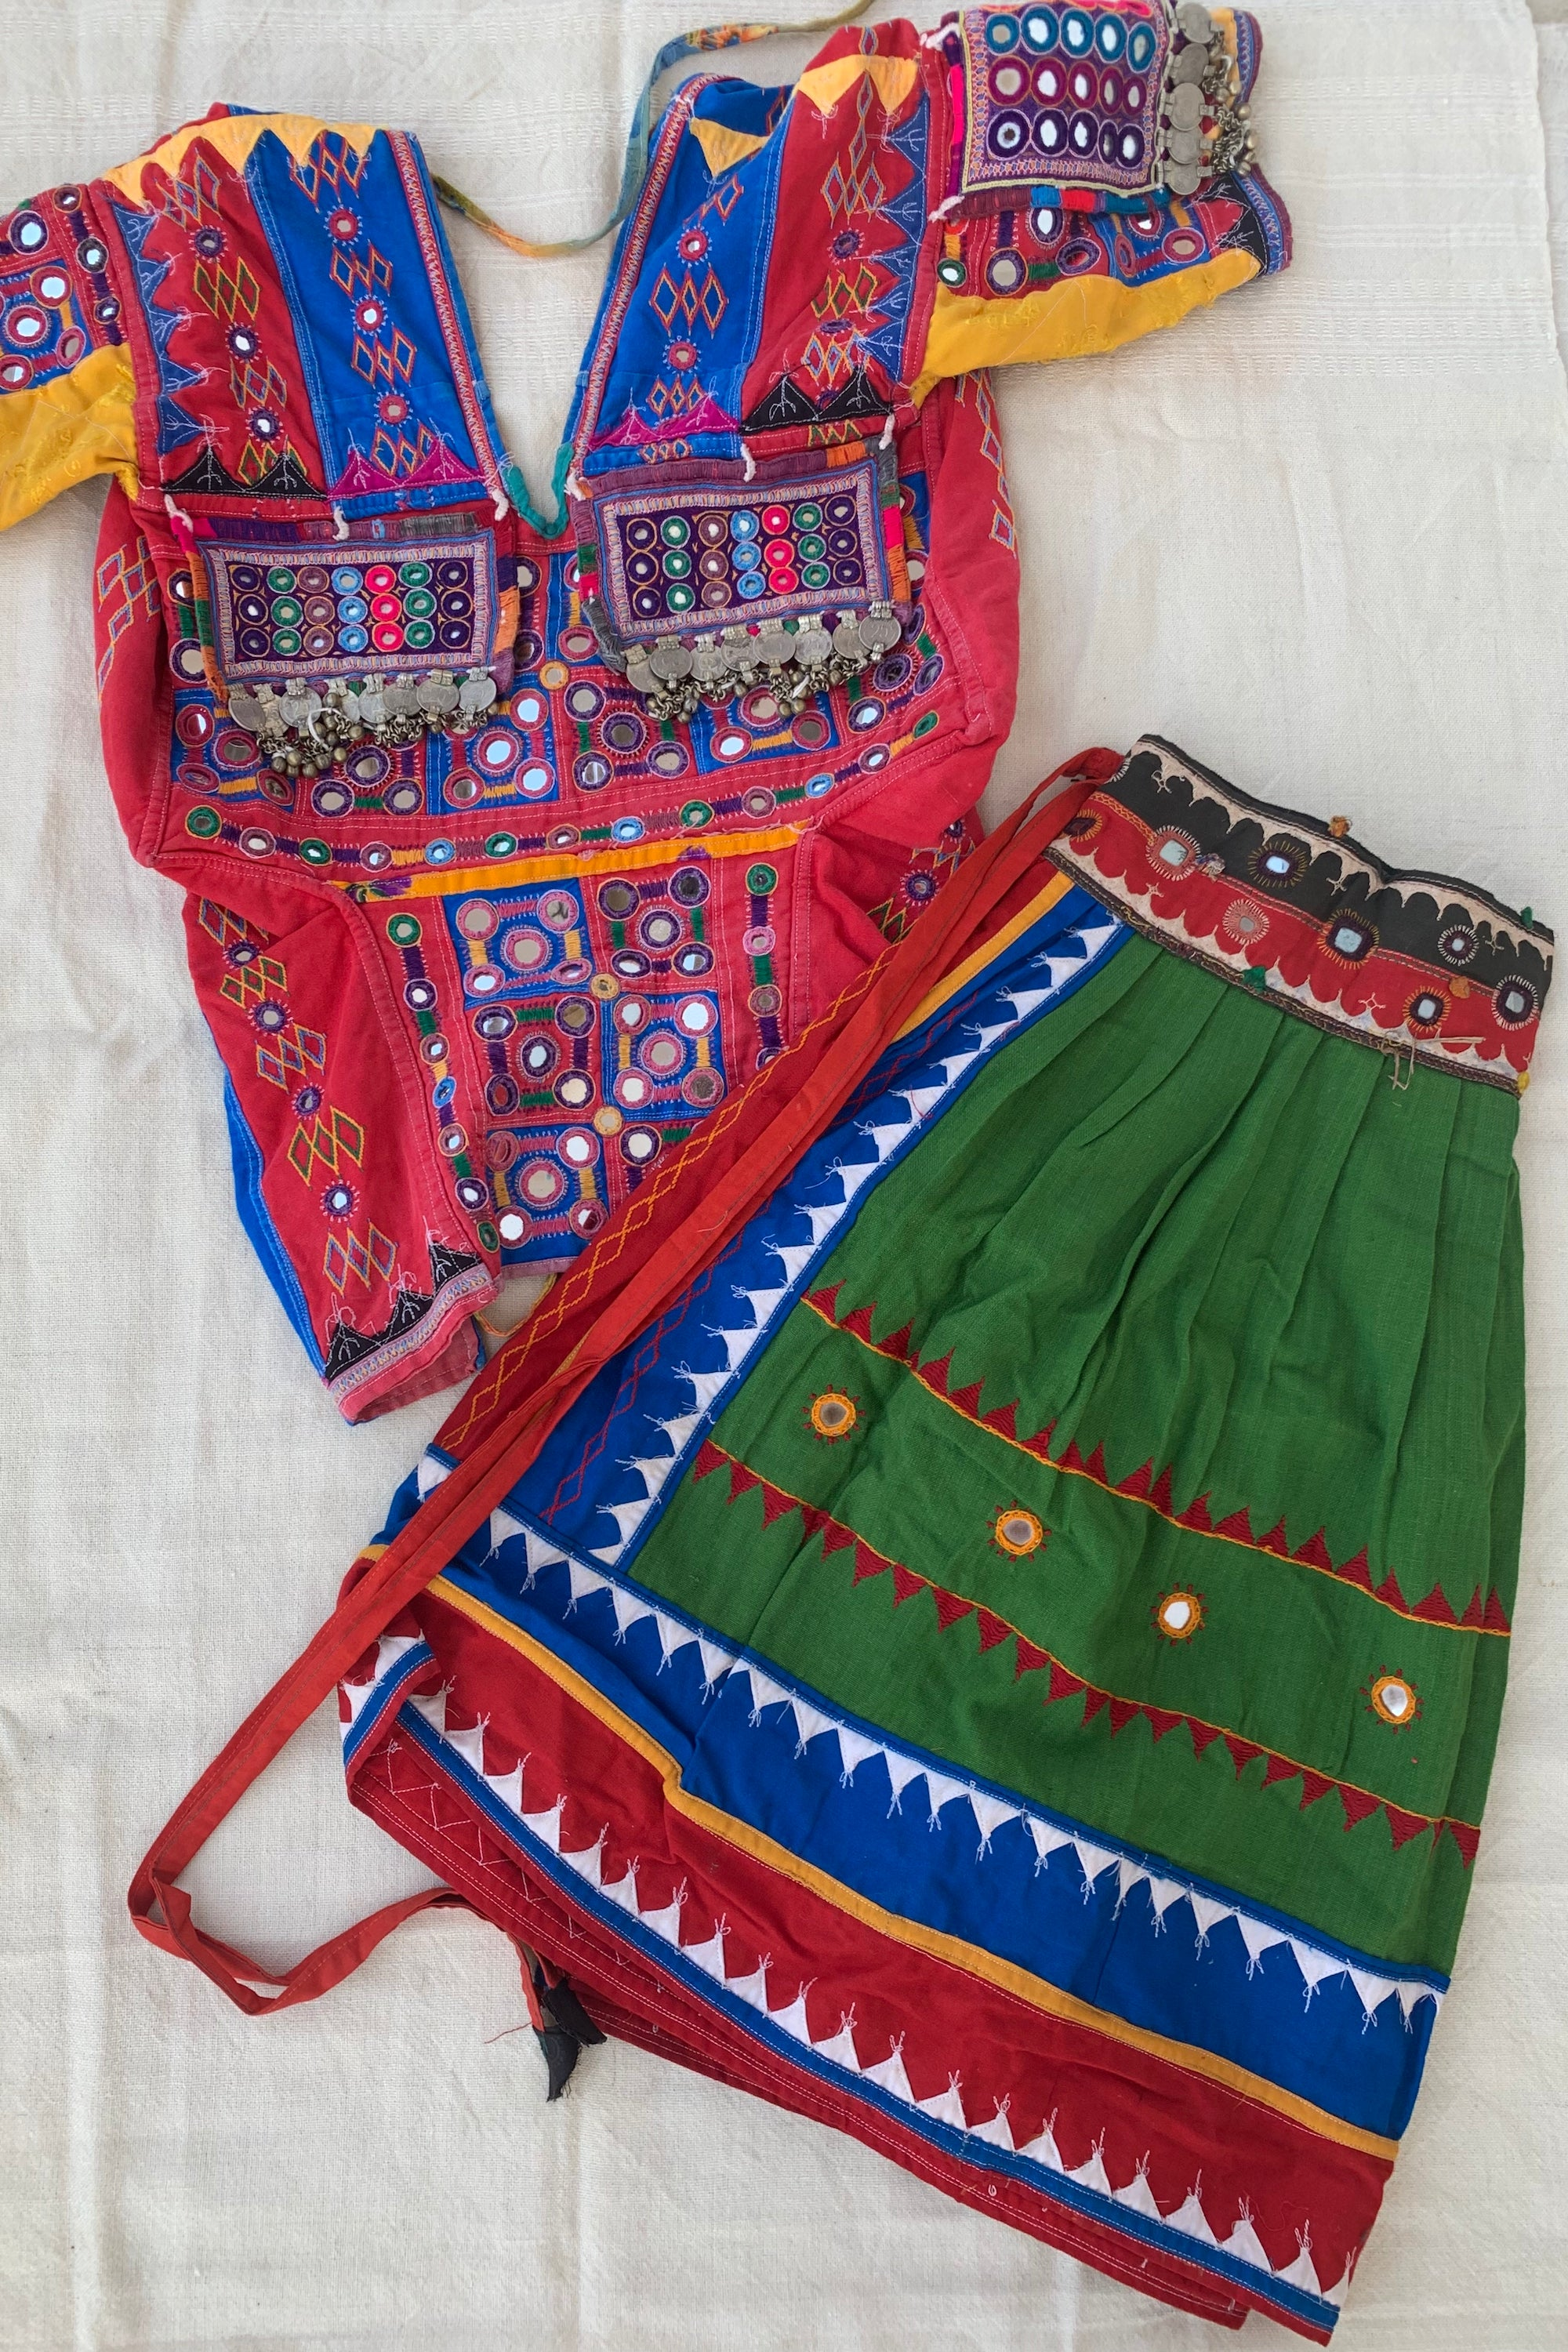 Karnataka Banjara Tribal Hand Embroidery Top + Skirt >>~•》Outfit. Detailed Traditional Embroidered Textiles. Unique Tribal One Of A Kind